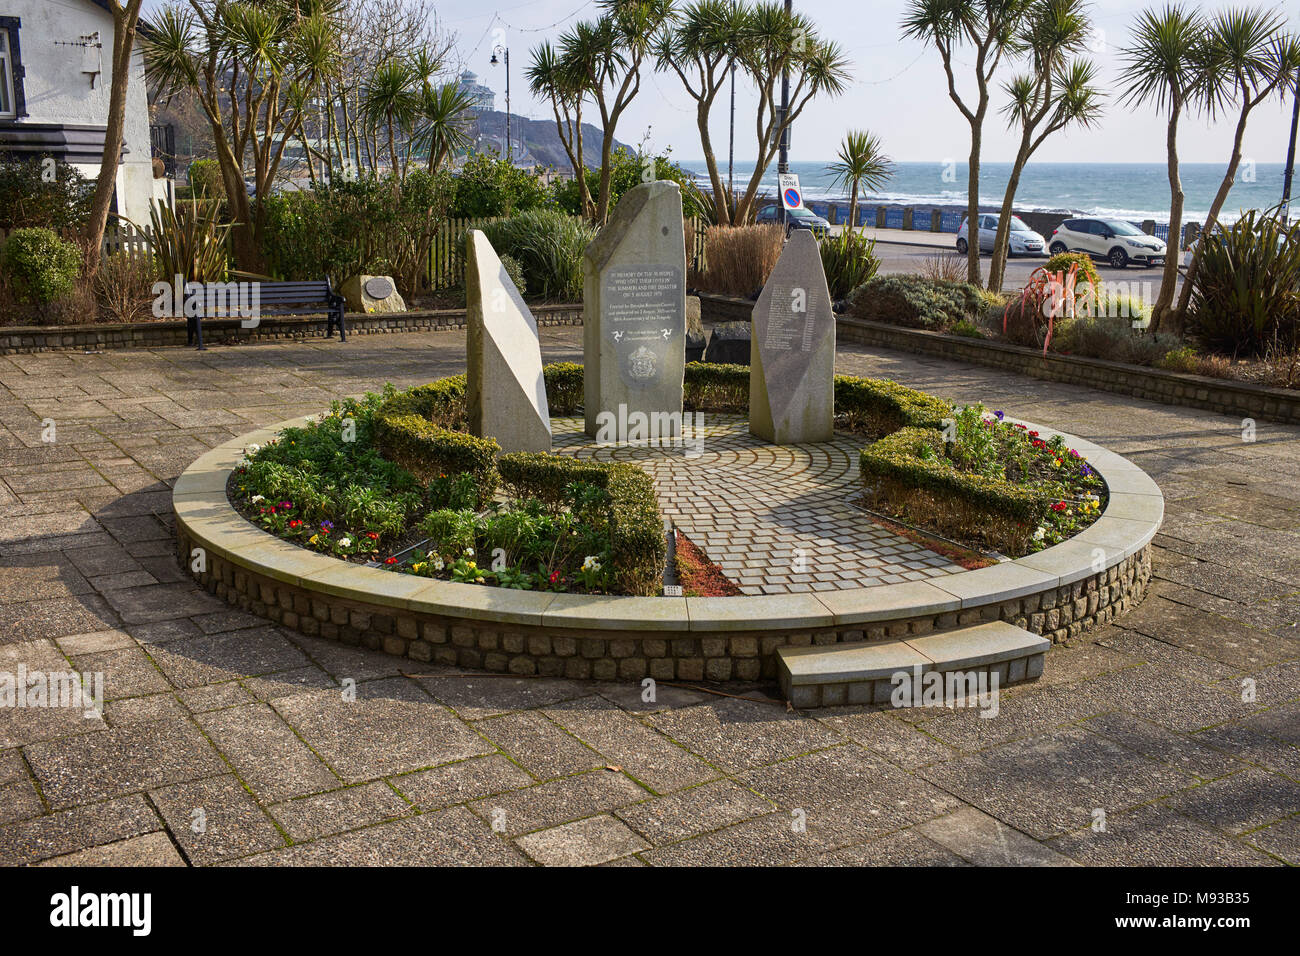 The memorial to the 50 people who lost their lives in the Summerland fire disaster on 2 August 1973 near to the site in Douglas, Isle of Man - Stock Image